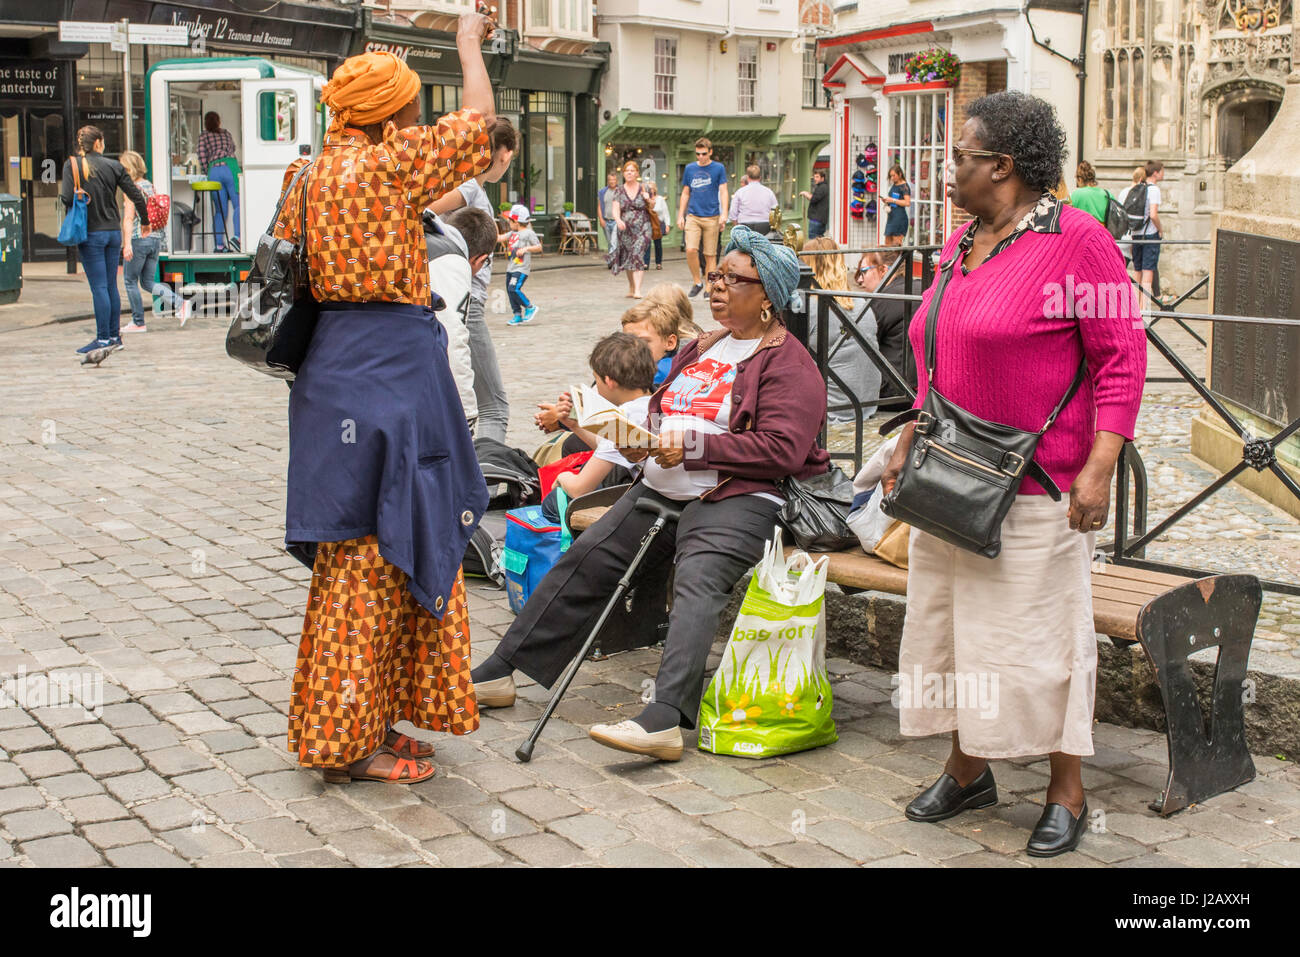 A group of female friends who have travelled from London to Canterbury for a day out taking some time to rest before - Stock Image